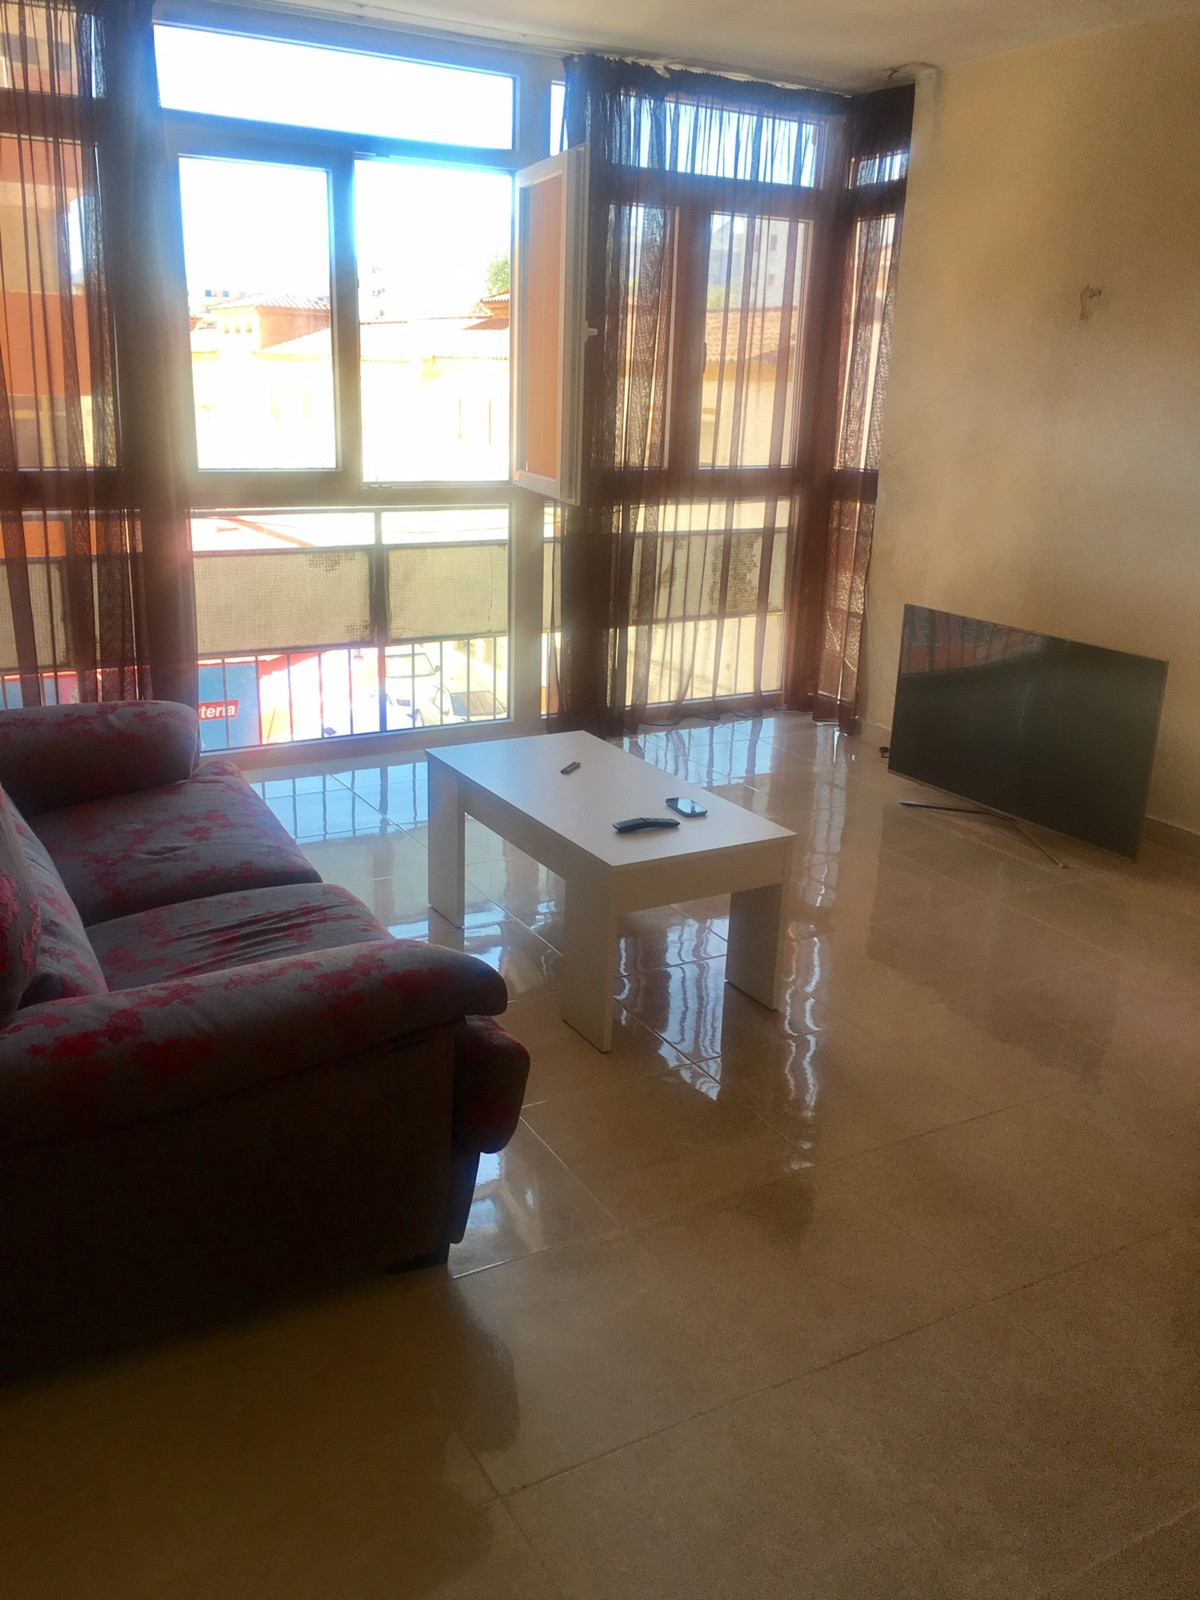 Good apartment, well located 5 minutes walk from the beach, 15 minutes from the center, 10 minutes f,Spain